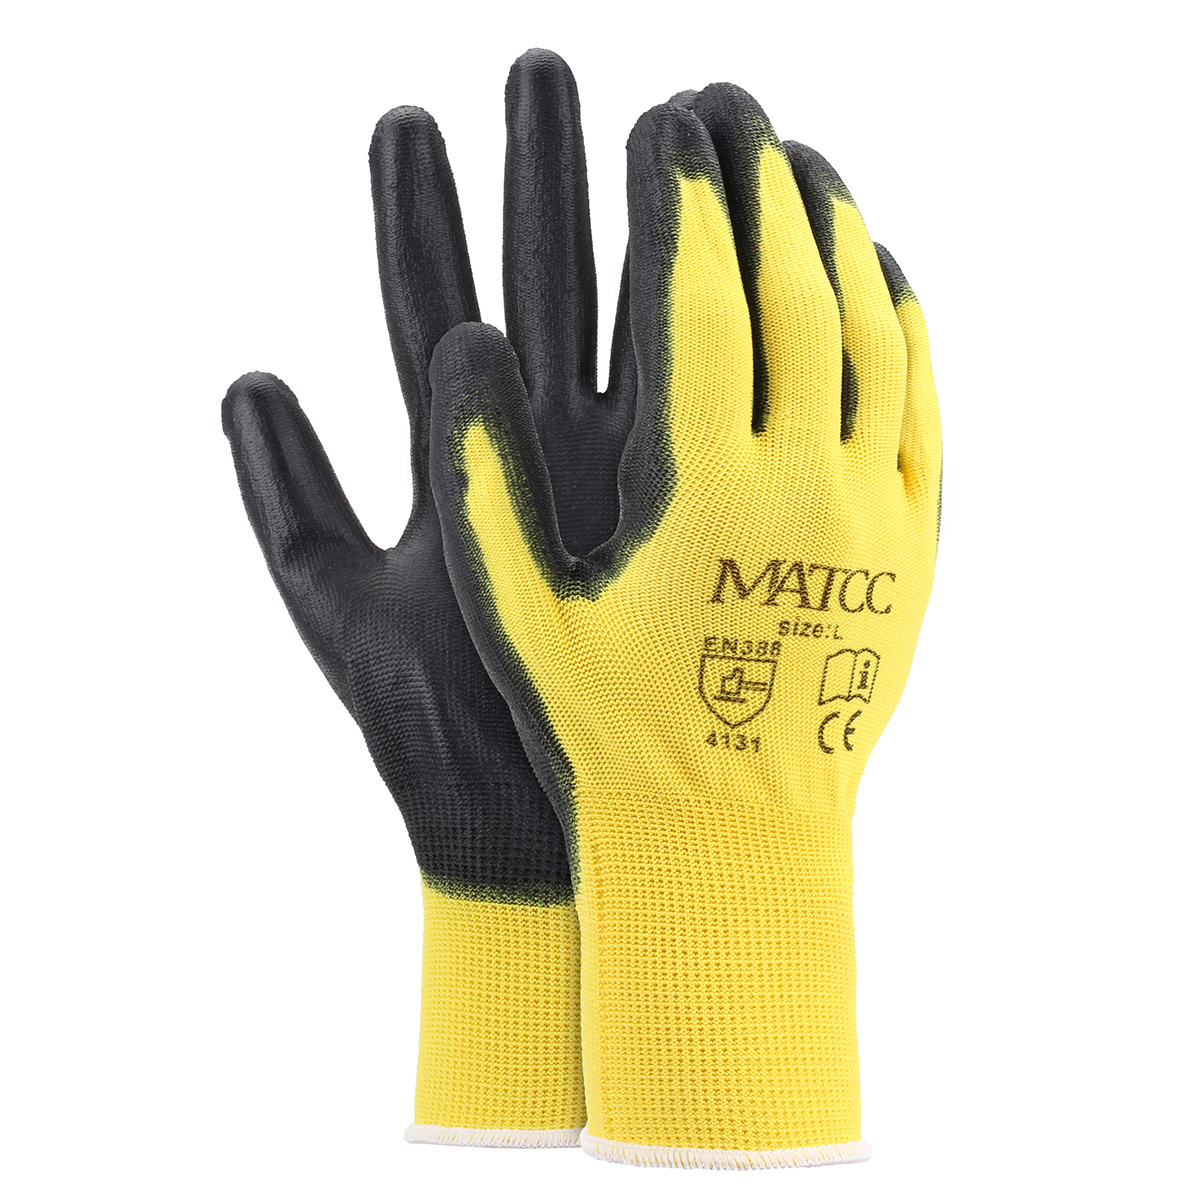 12 Pairs PU Nitrile Coated Safety Work Gloves Garden Construction Grip Anti-Slip Size M/L/XL